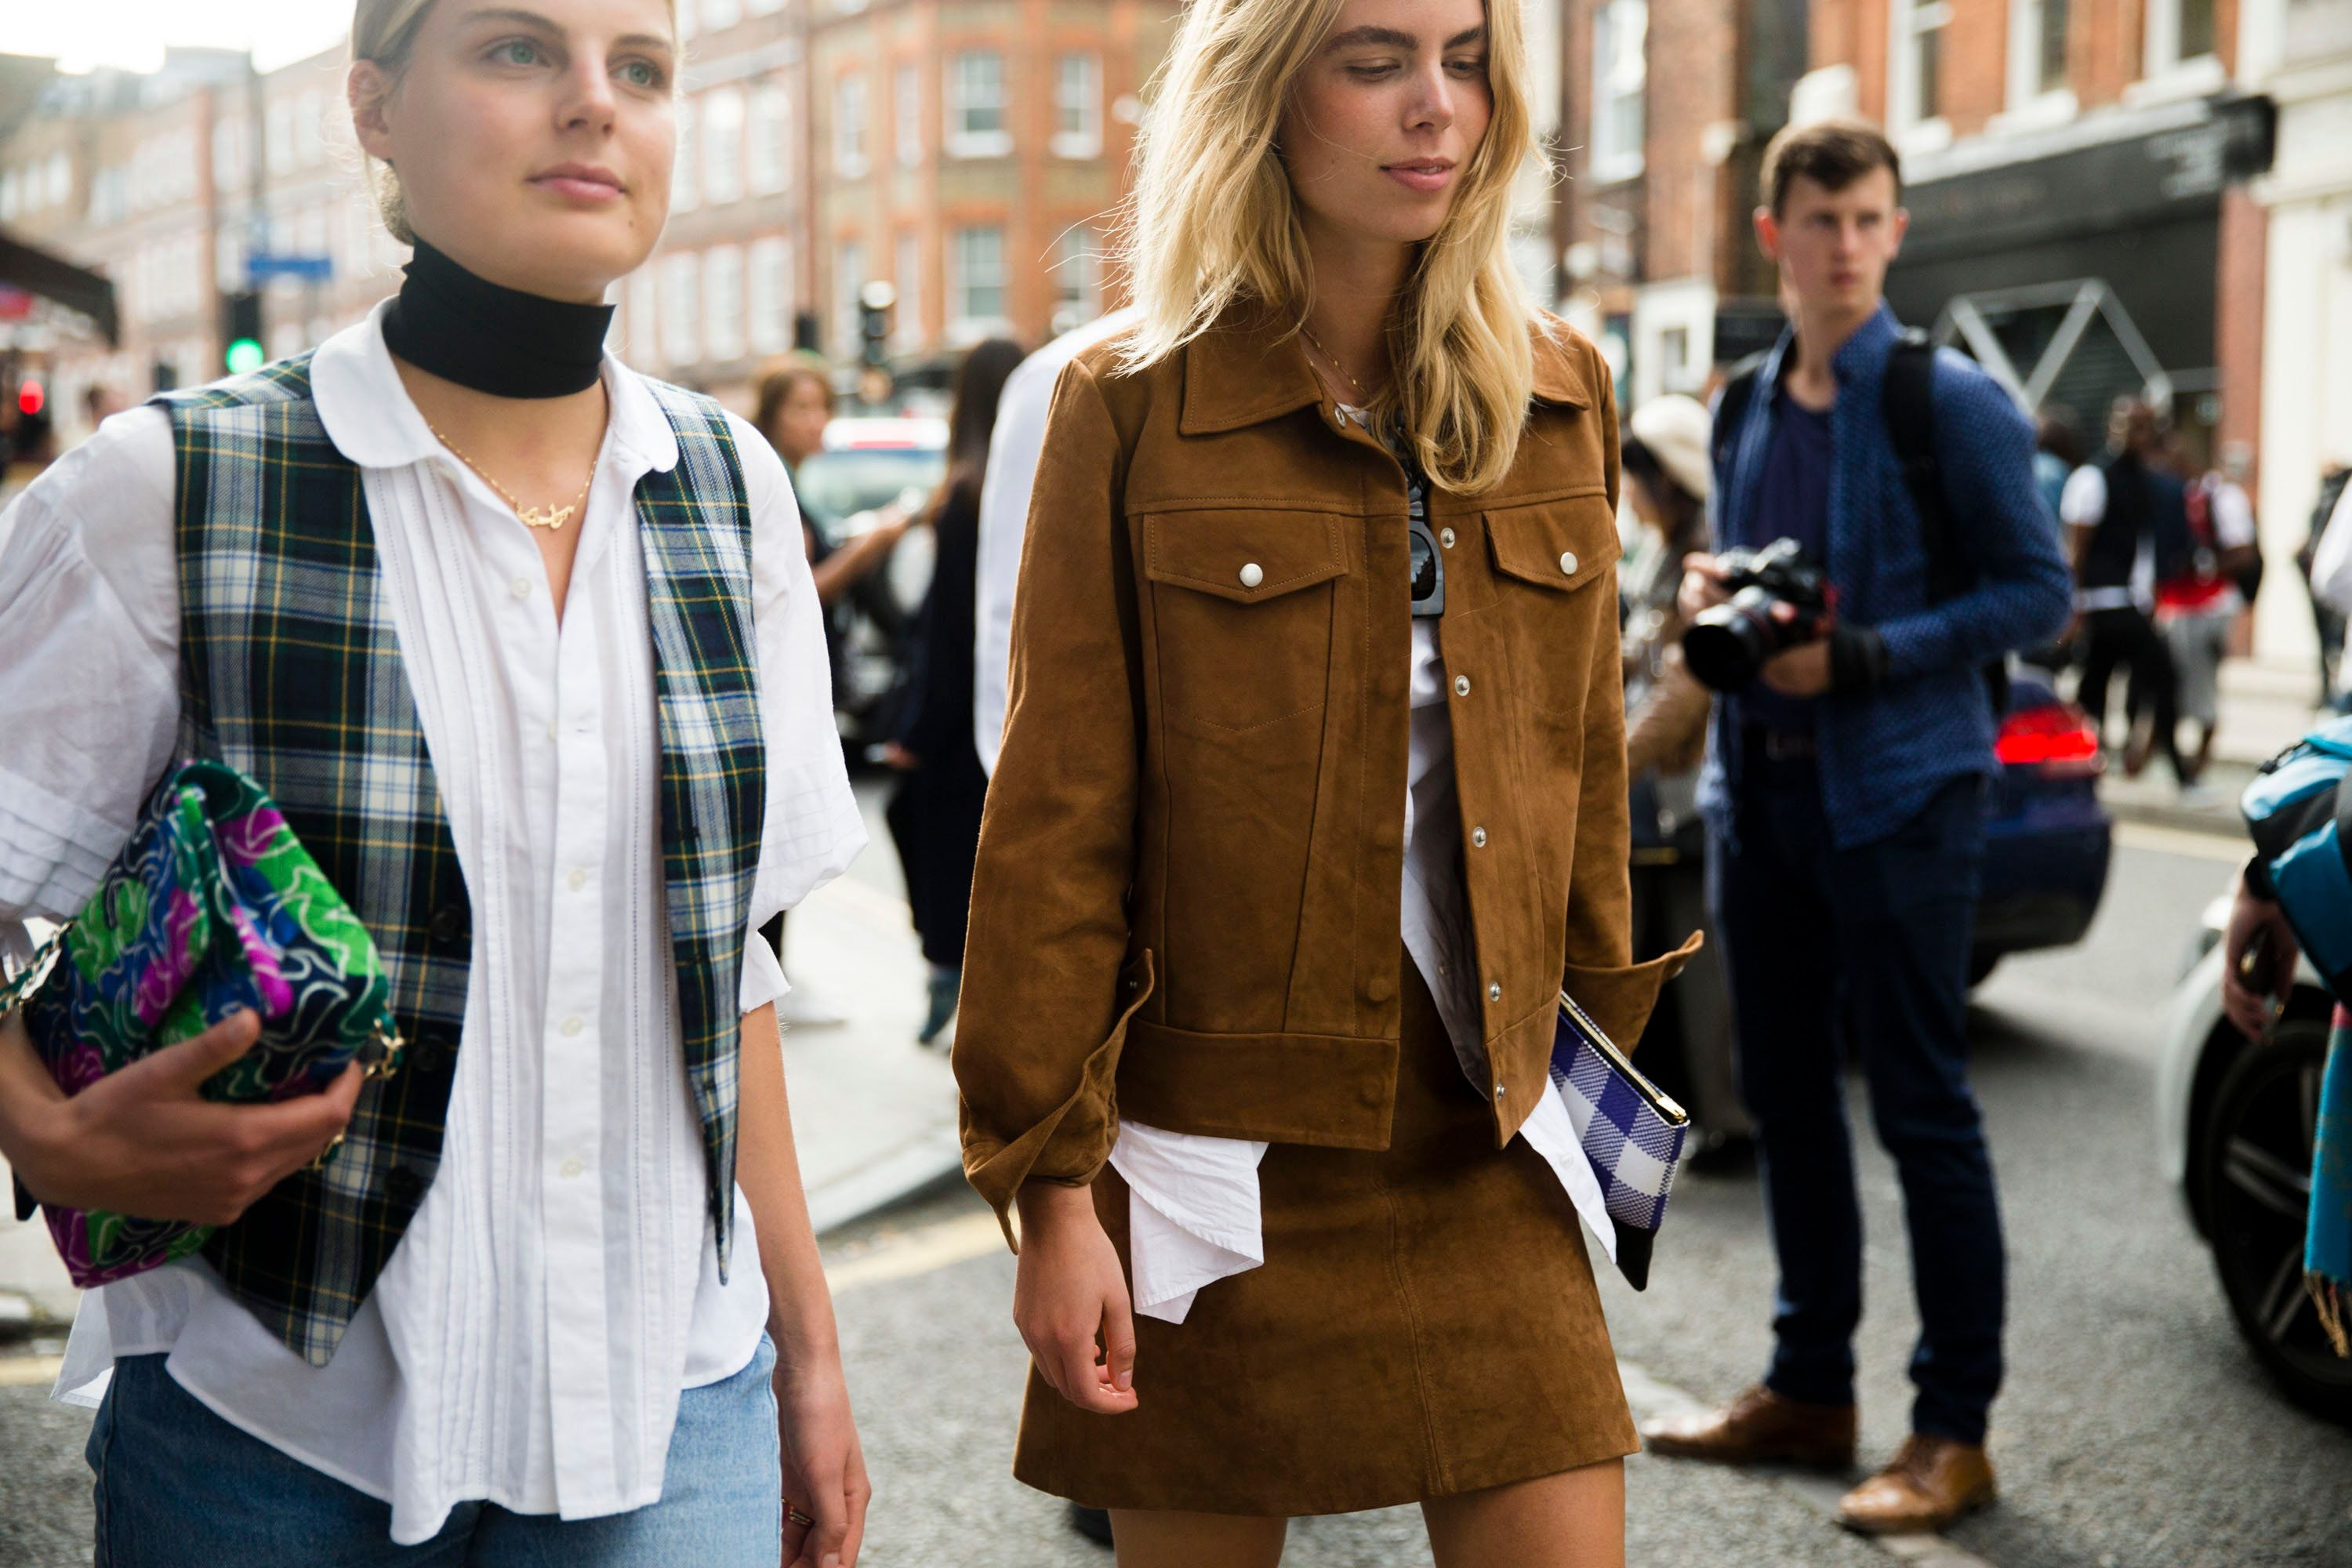 LONDON, ENGLAND - SEPTEMBER 19:  Claire Beermann and Laura Maria Wulff of Wood Wood enter the J.W. Anderson show during London Fashion Week Spring Summer 2016 at Yeomanry house on September 19, 2015 in London, England. Claire wears a Comme des Garcons top, Each x Other plaid vest, and a Rianna and Nina purse. Laura wears a structured suede jacket with pockets and skirt. (Photo by Melodie Jeng/Getty Images)